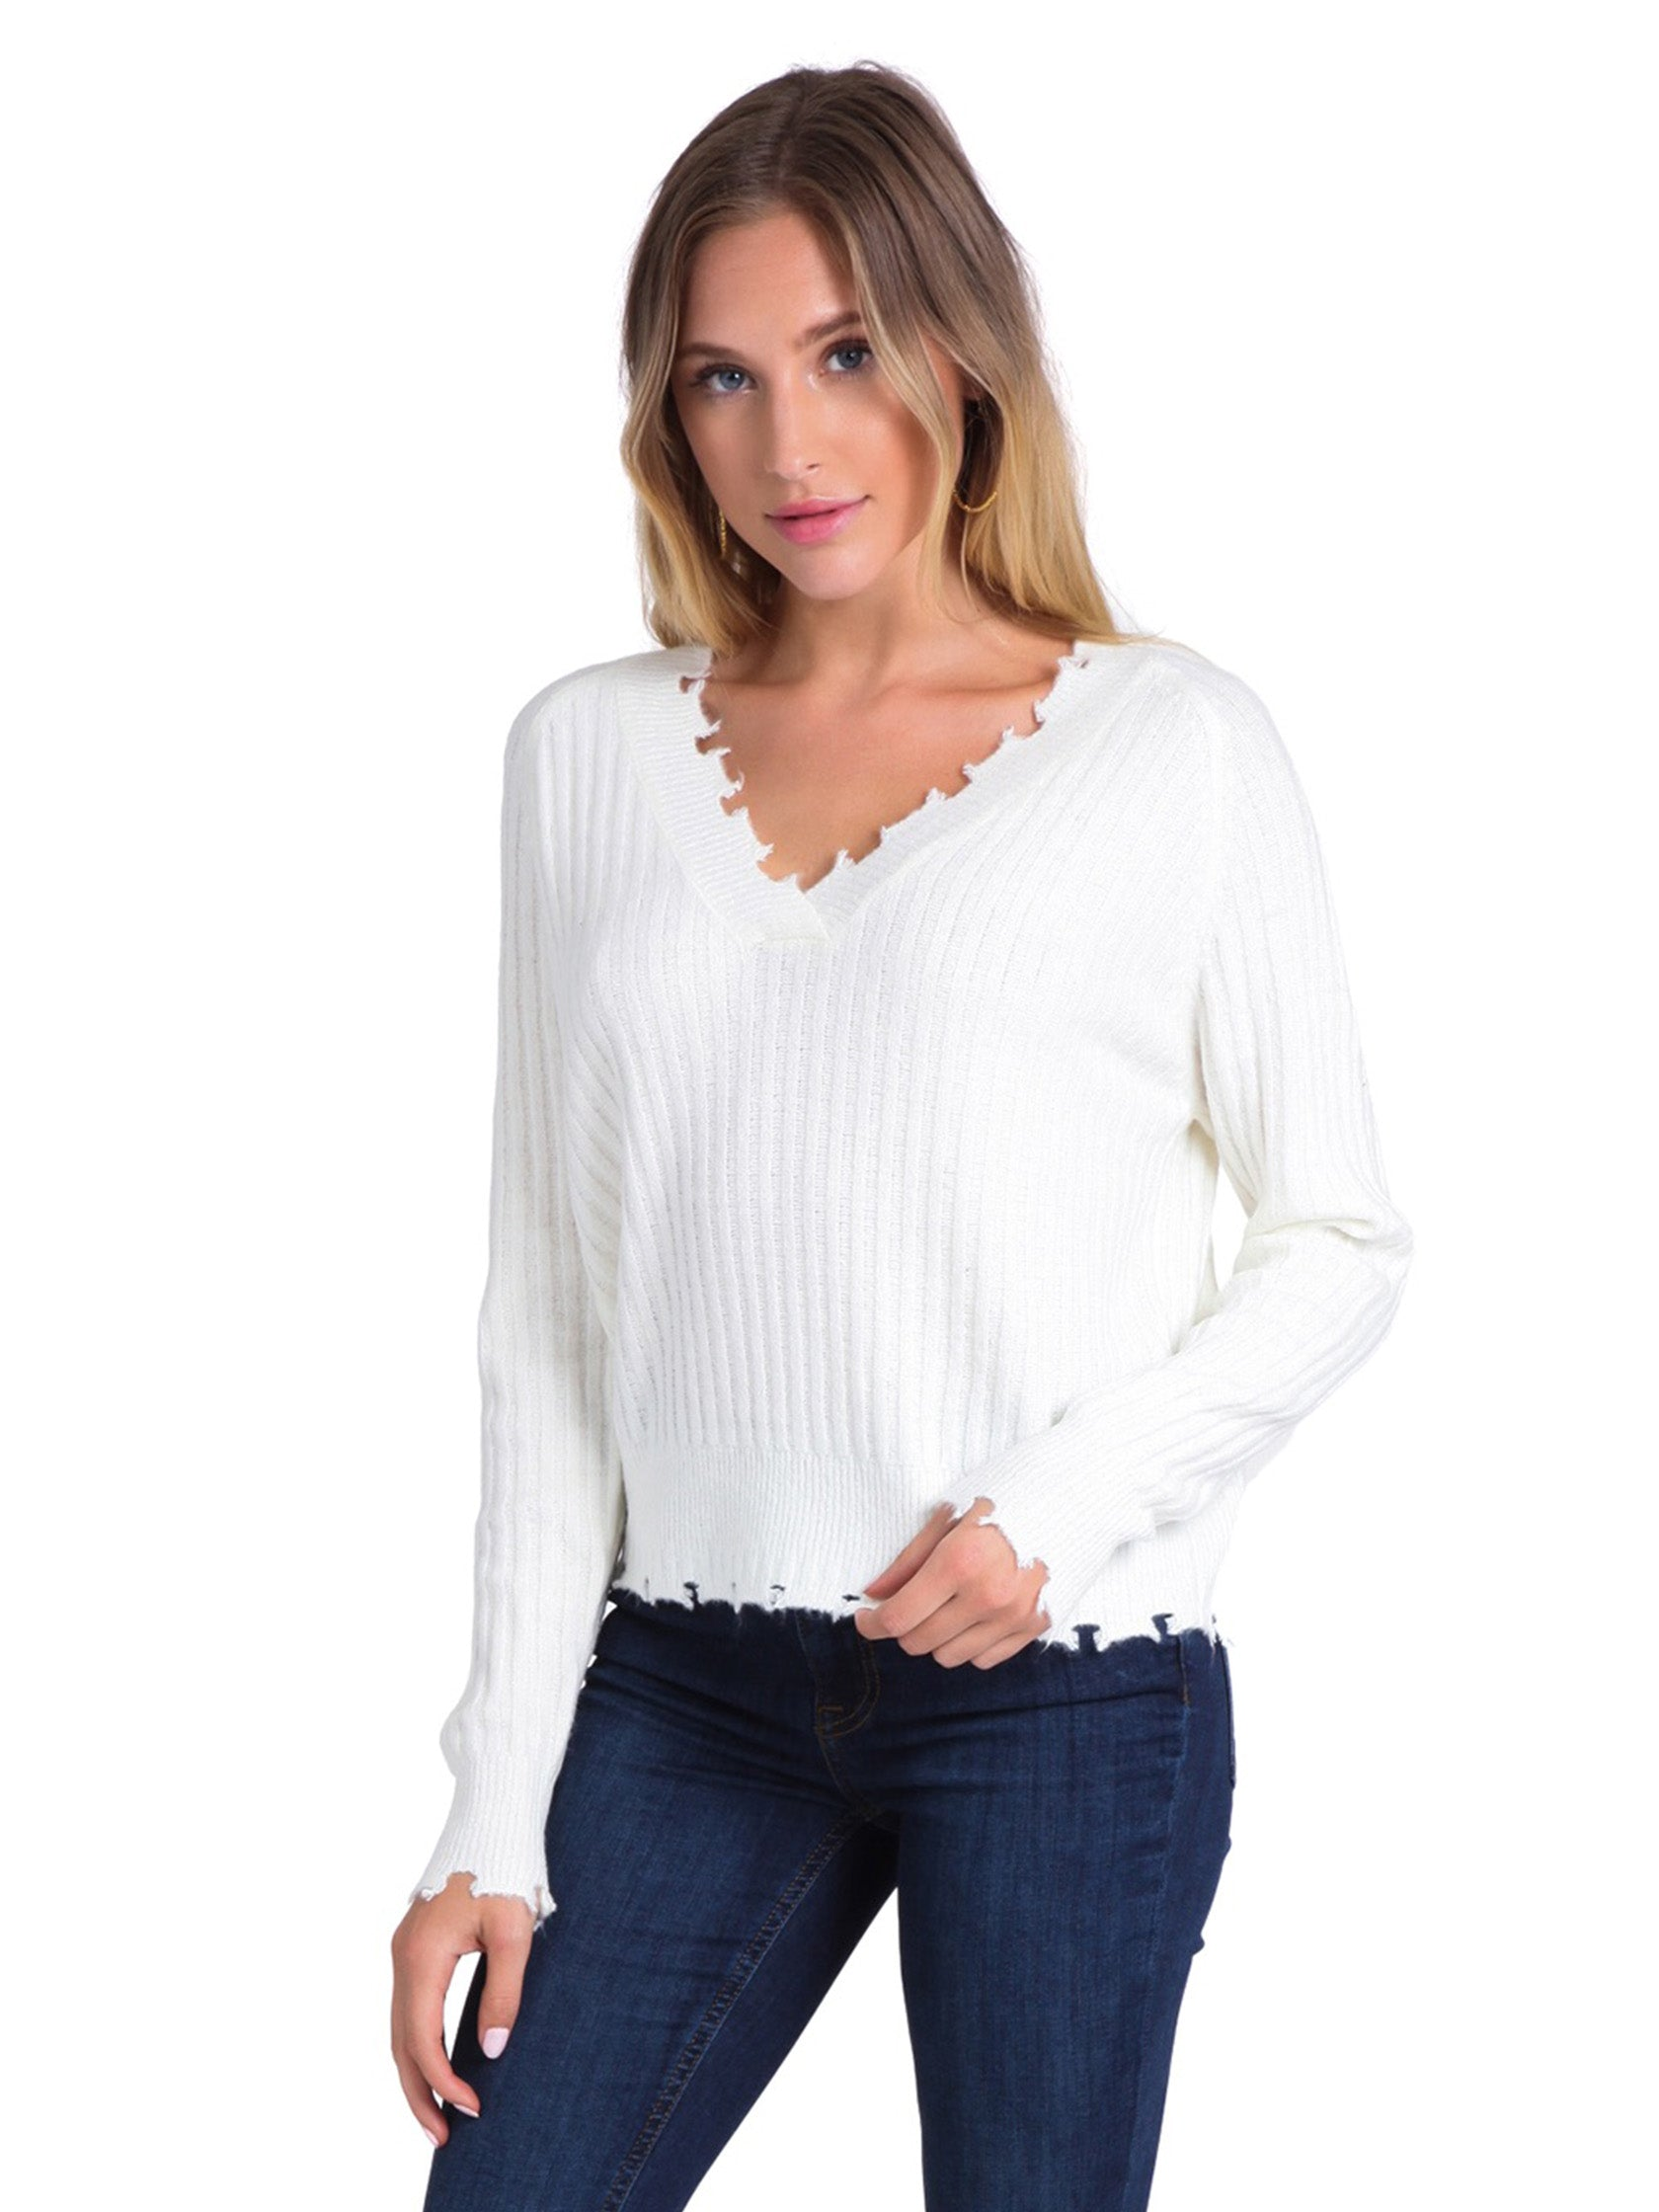 Woman wearing a sweater rental from FashionPass called Distressed Ivory Sweater